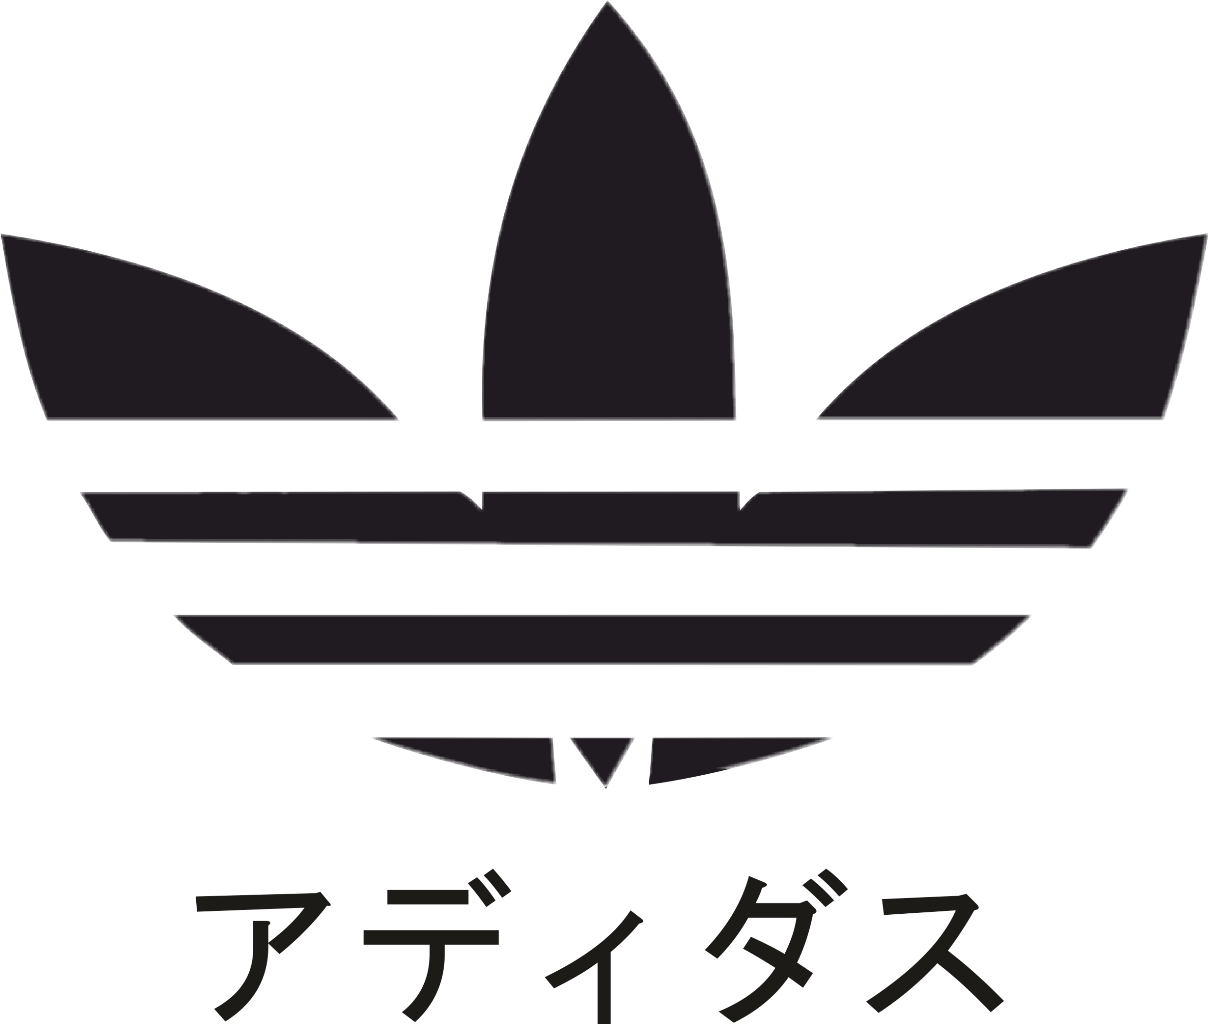 Tumblr png adidas. Sad sadidas aesthetic dark